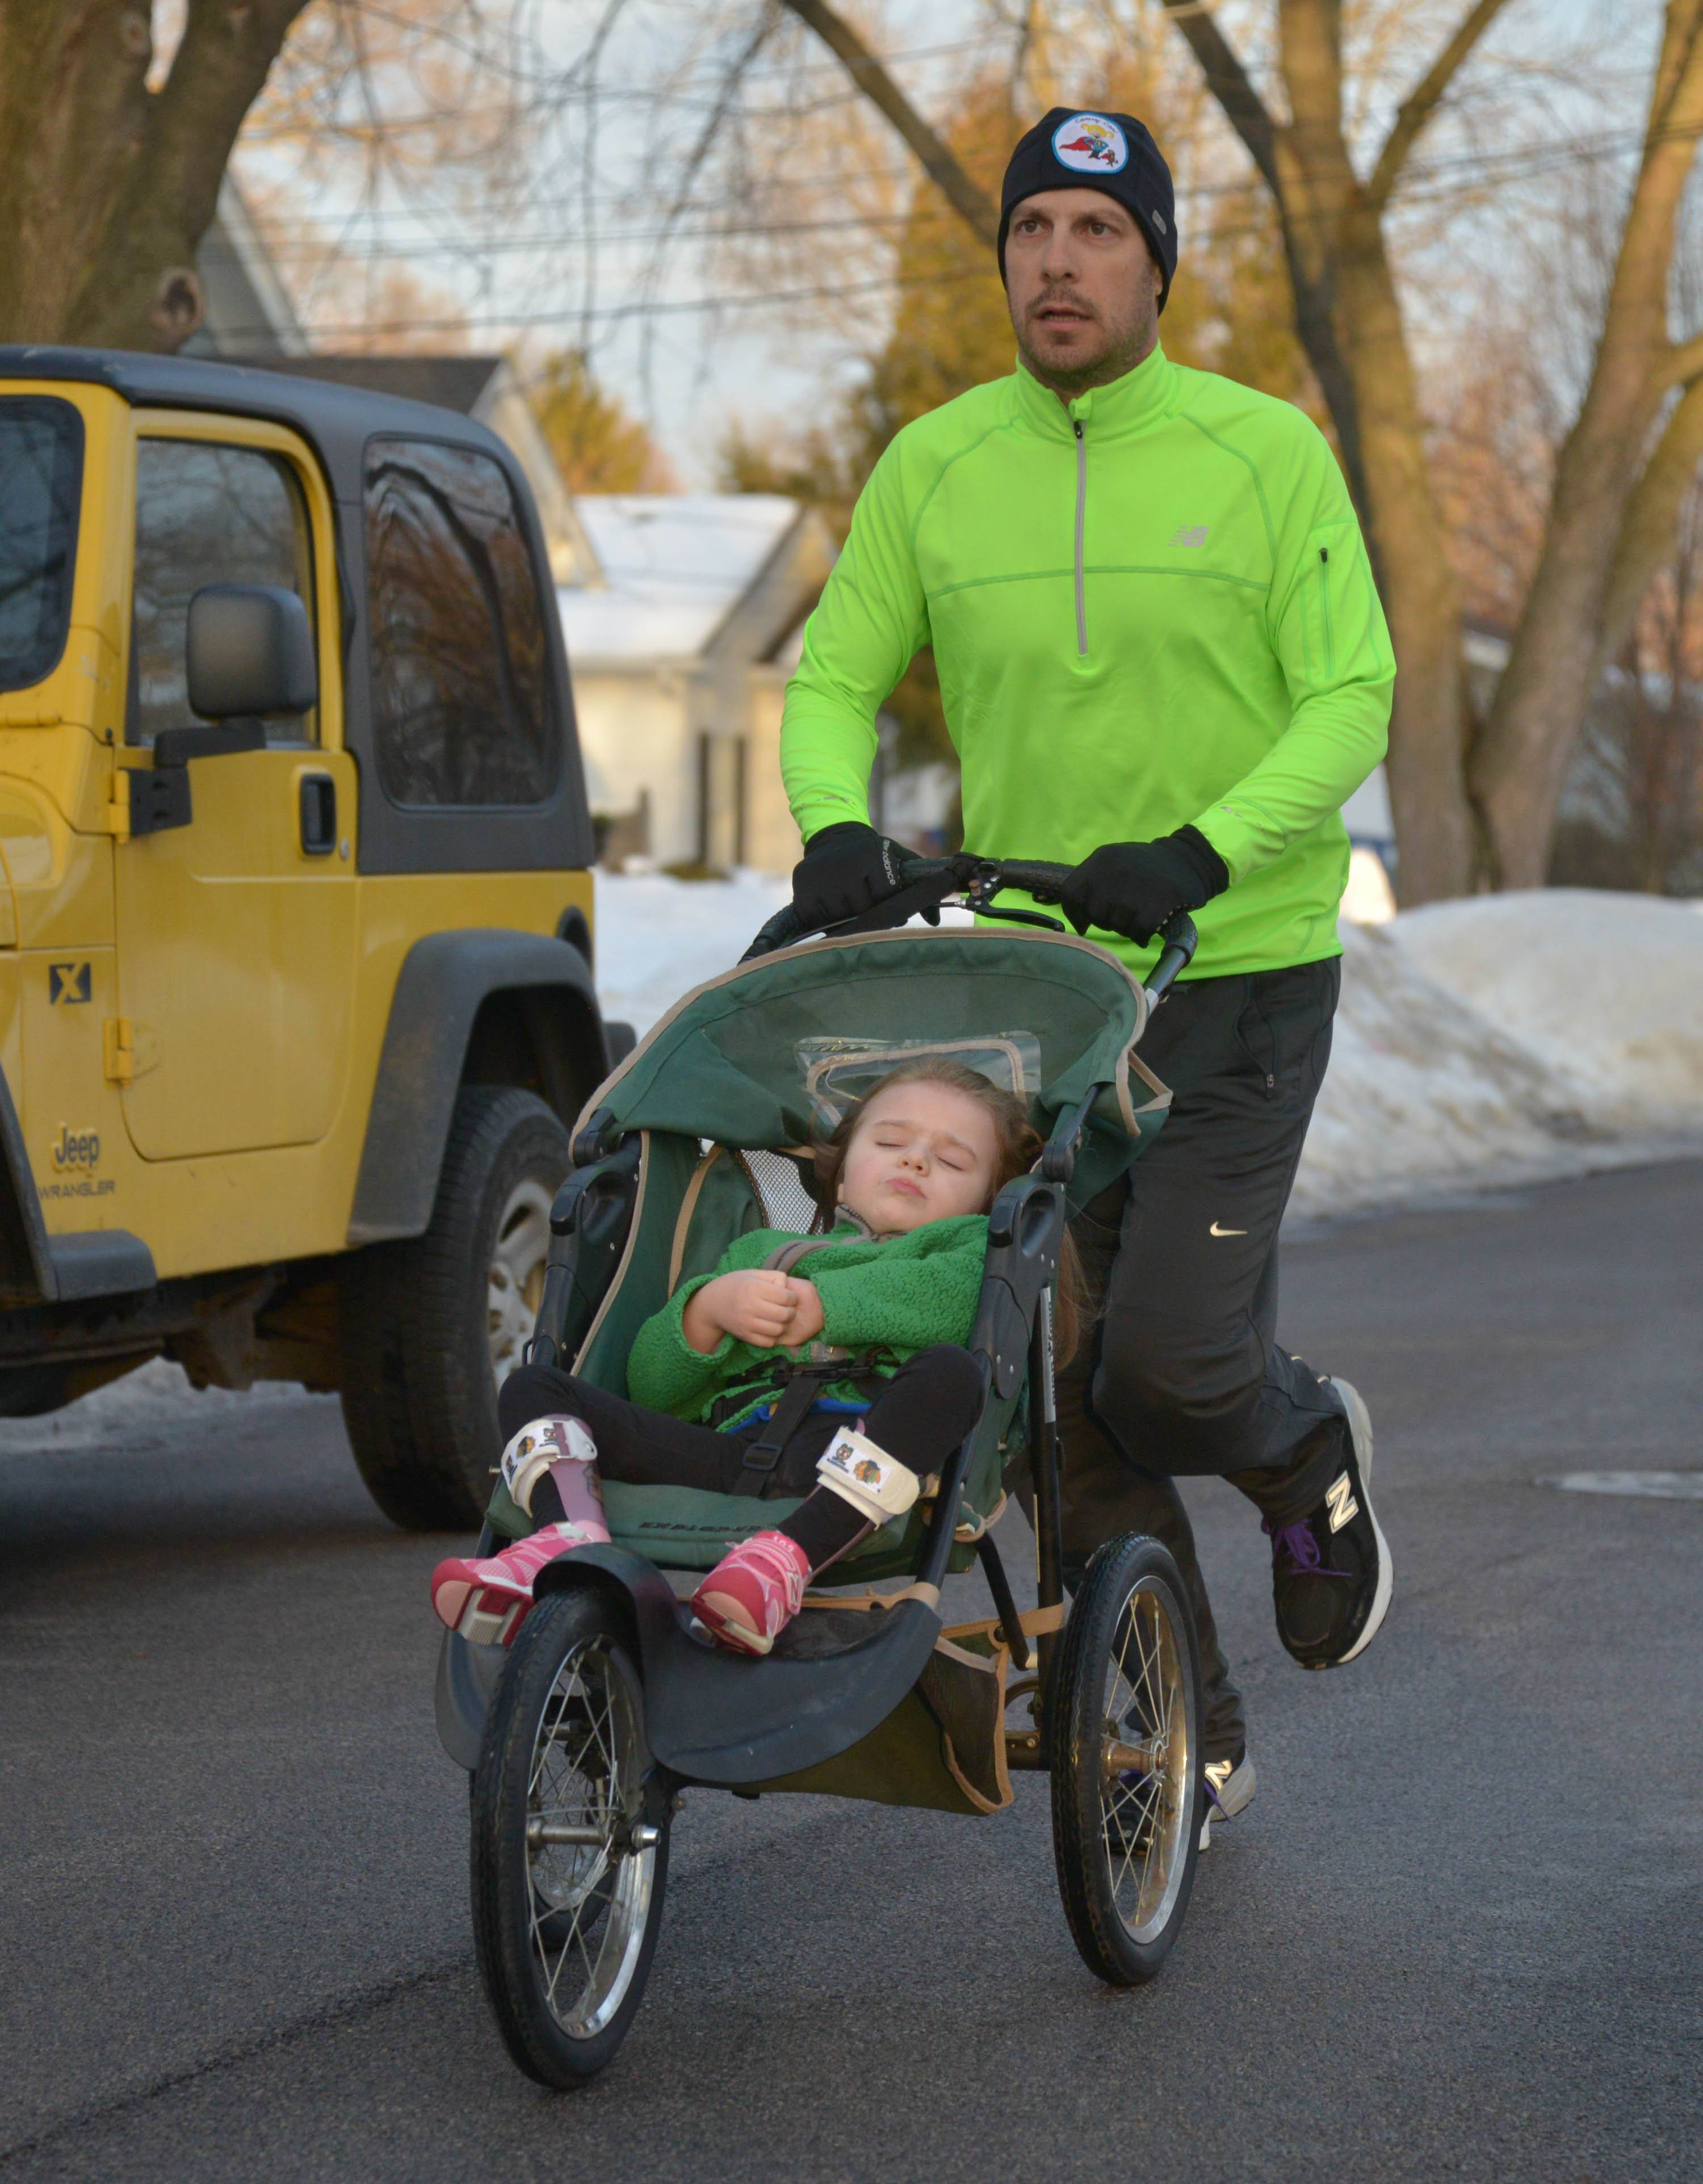 While a bad back forced Bill Babiarz to give up running for a decade, the 34-year-old Wheaton father is training for a 150-mile run next month to raise funds and awareness in the fight against Rett syndrome, a neurological disorder that robs his daughter, Cammy of the ability to walk, talk or control her hands.